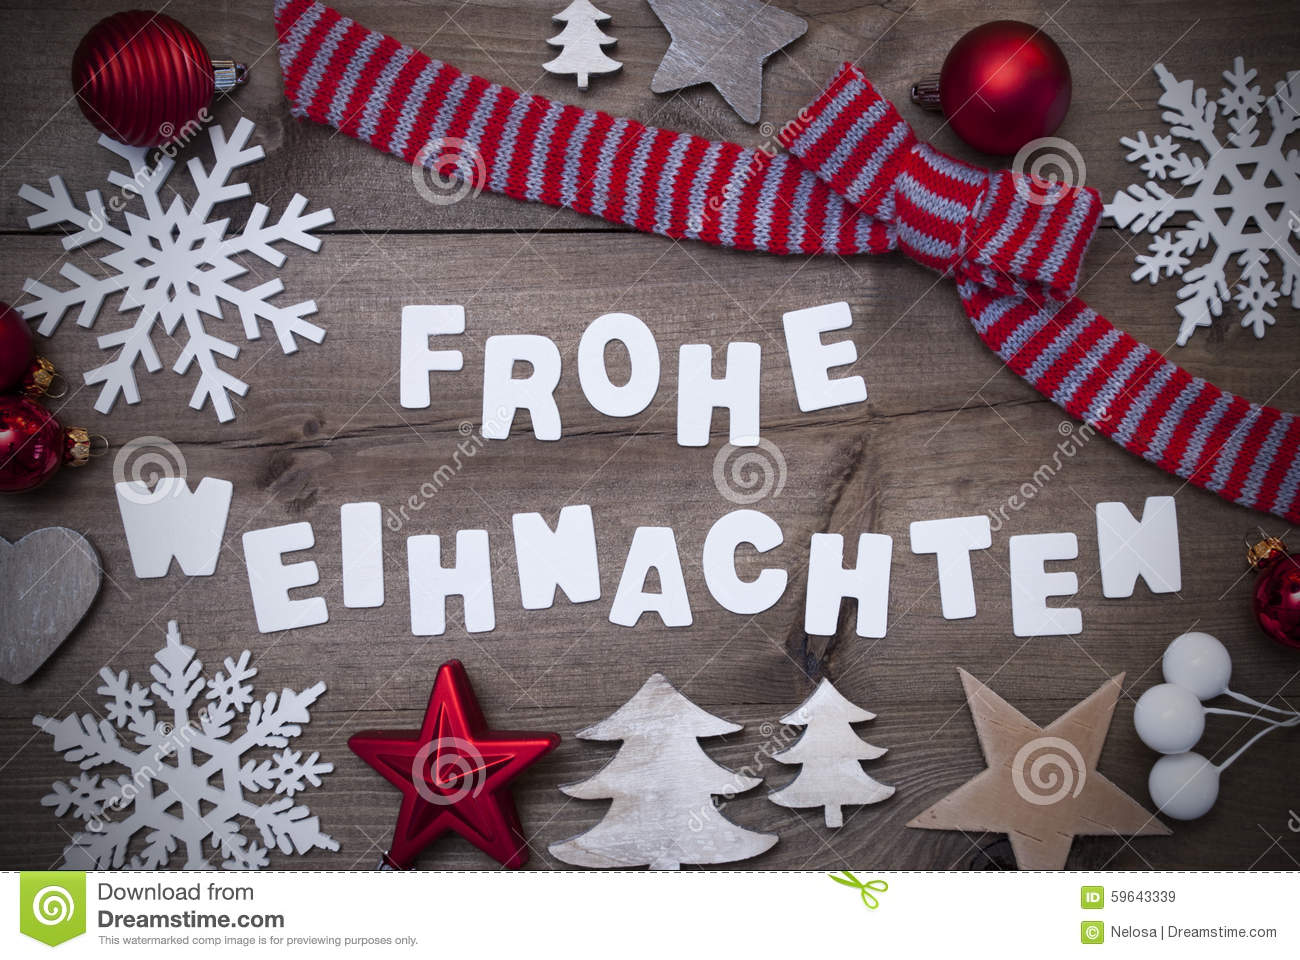 Bilder Zu Frohe Weihnachten.Frohe Weihnachten Mean Merry Christmas Red Loop Decoration